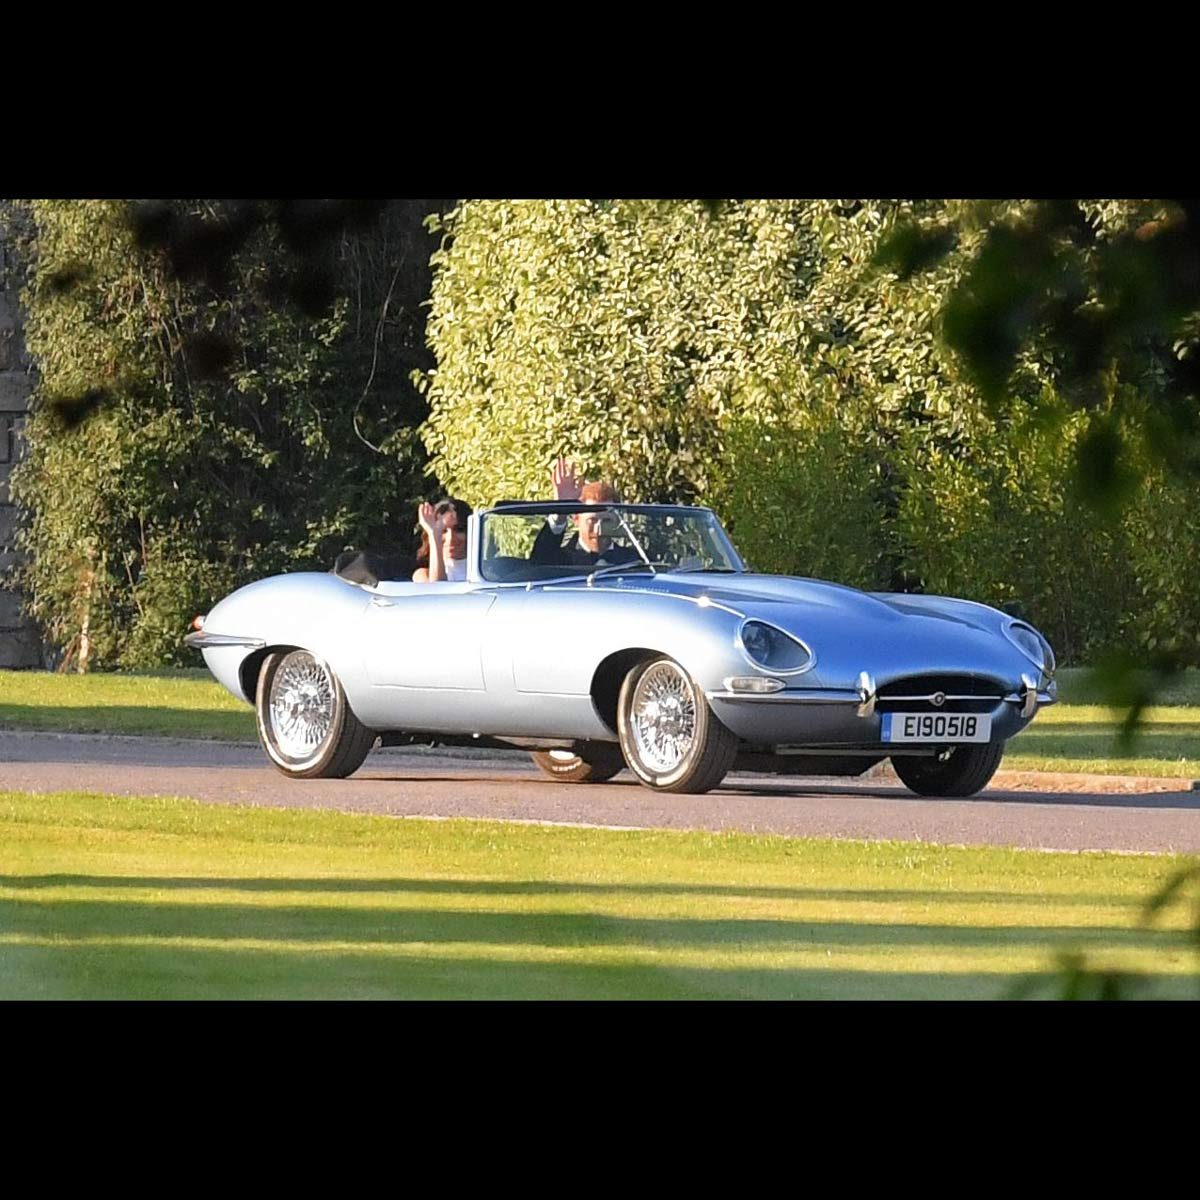 Prince Harry and Meghan Markle wave as they drive away in a Jaguar E-type following their wedding